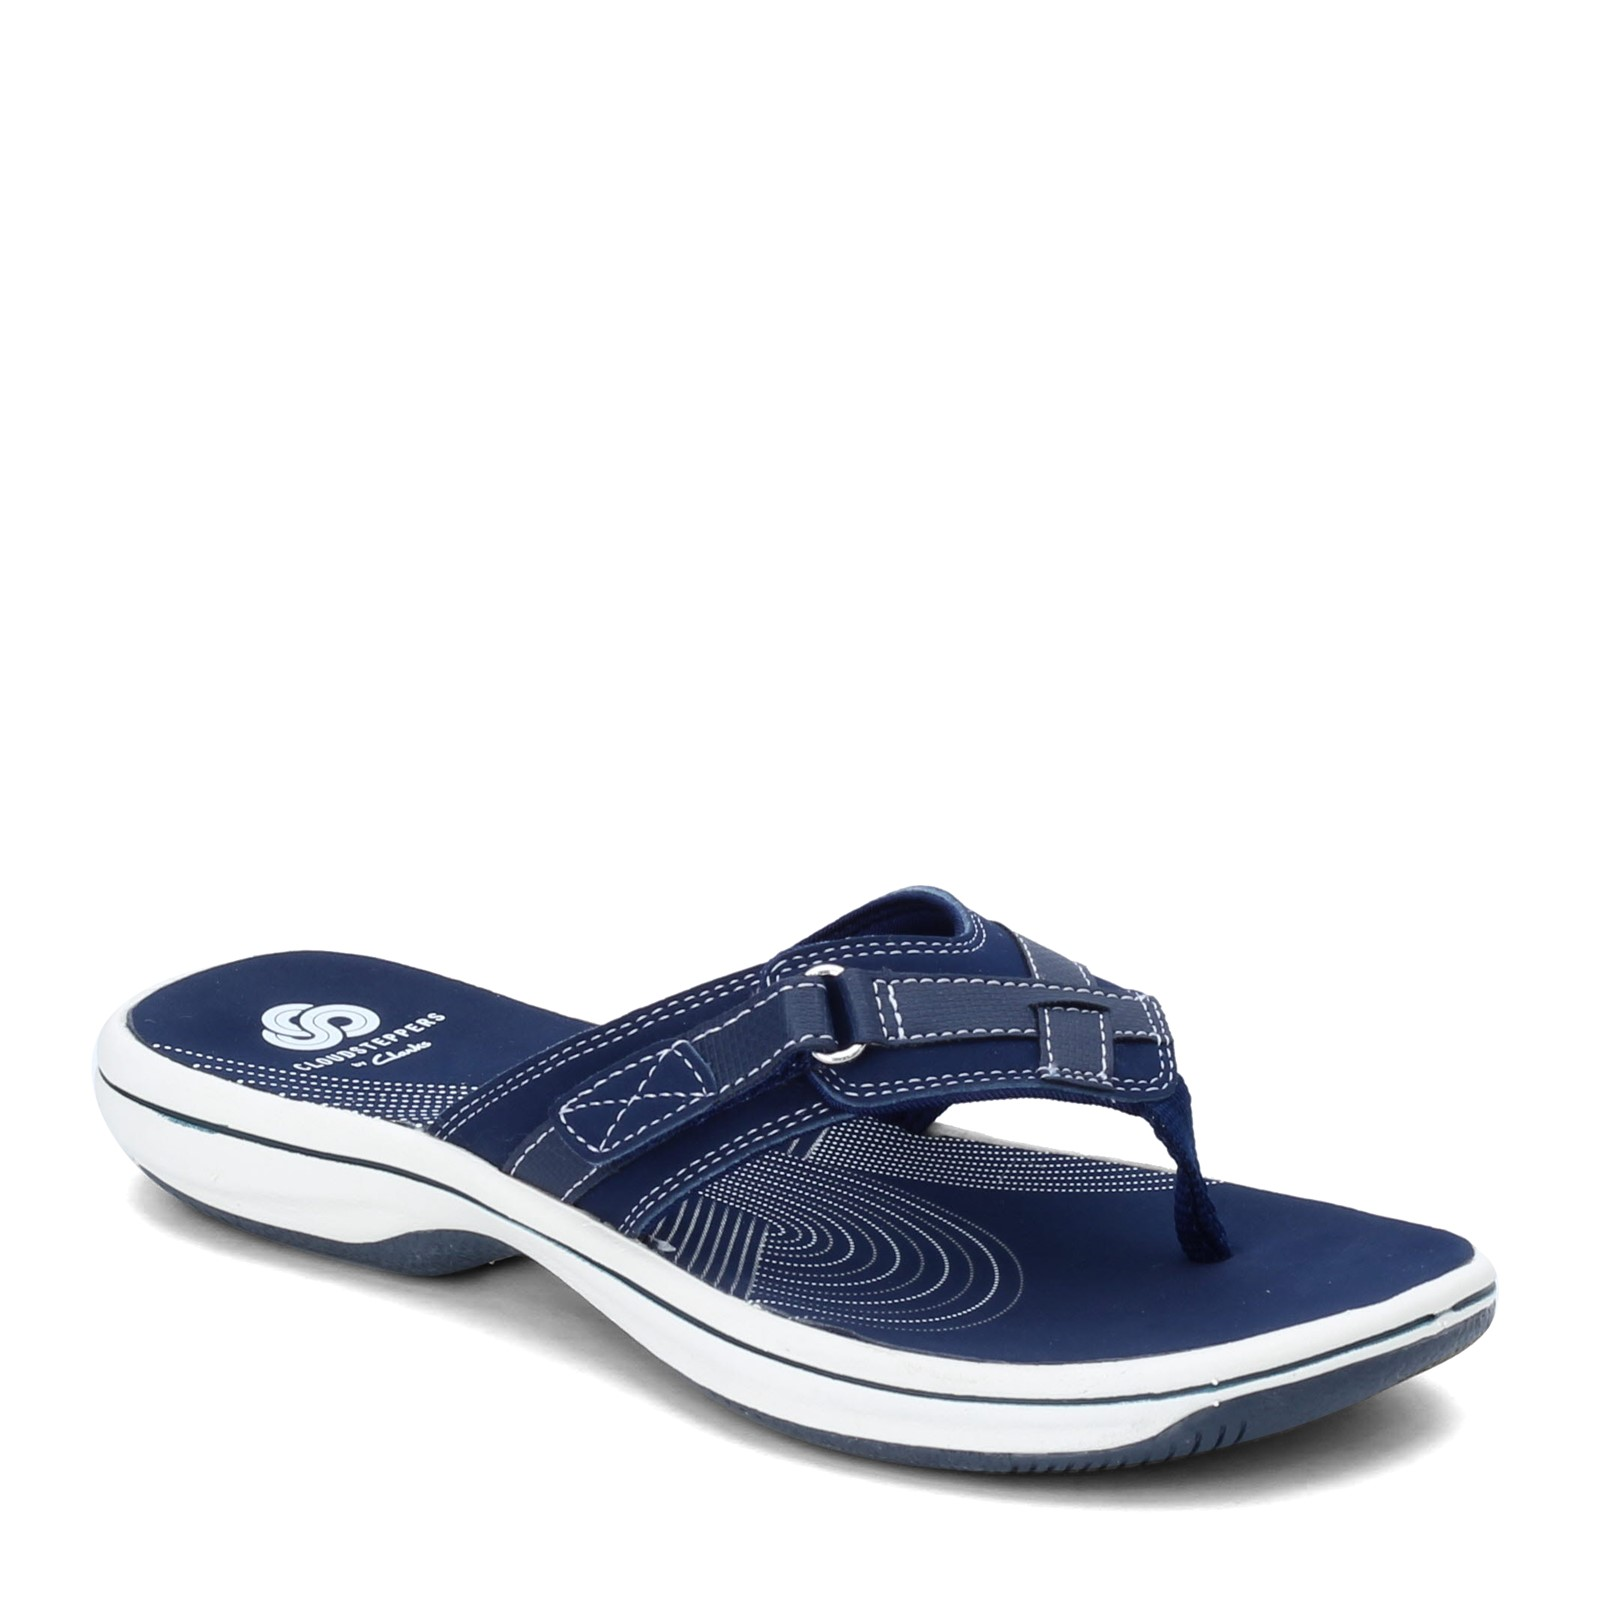 Women's Clarks, Breeze Sea Flip Flop